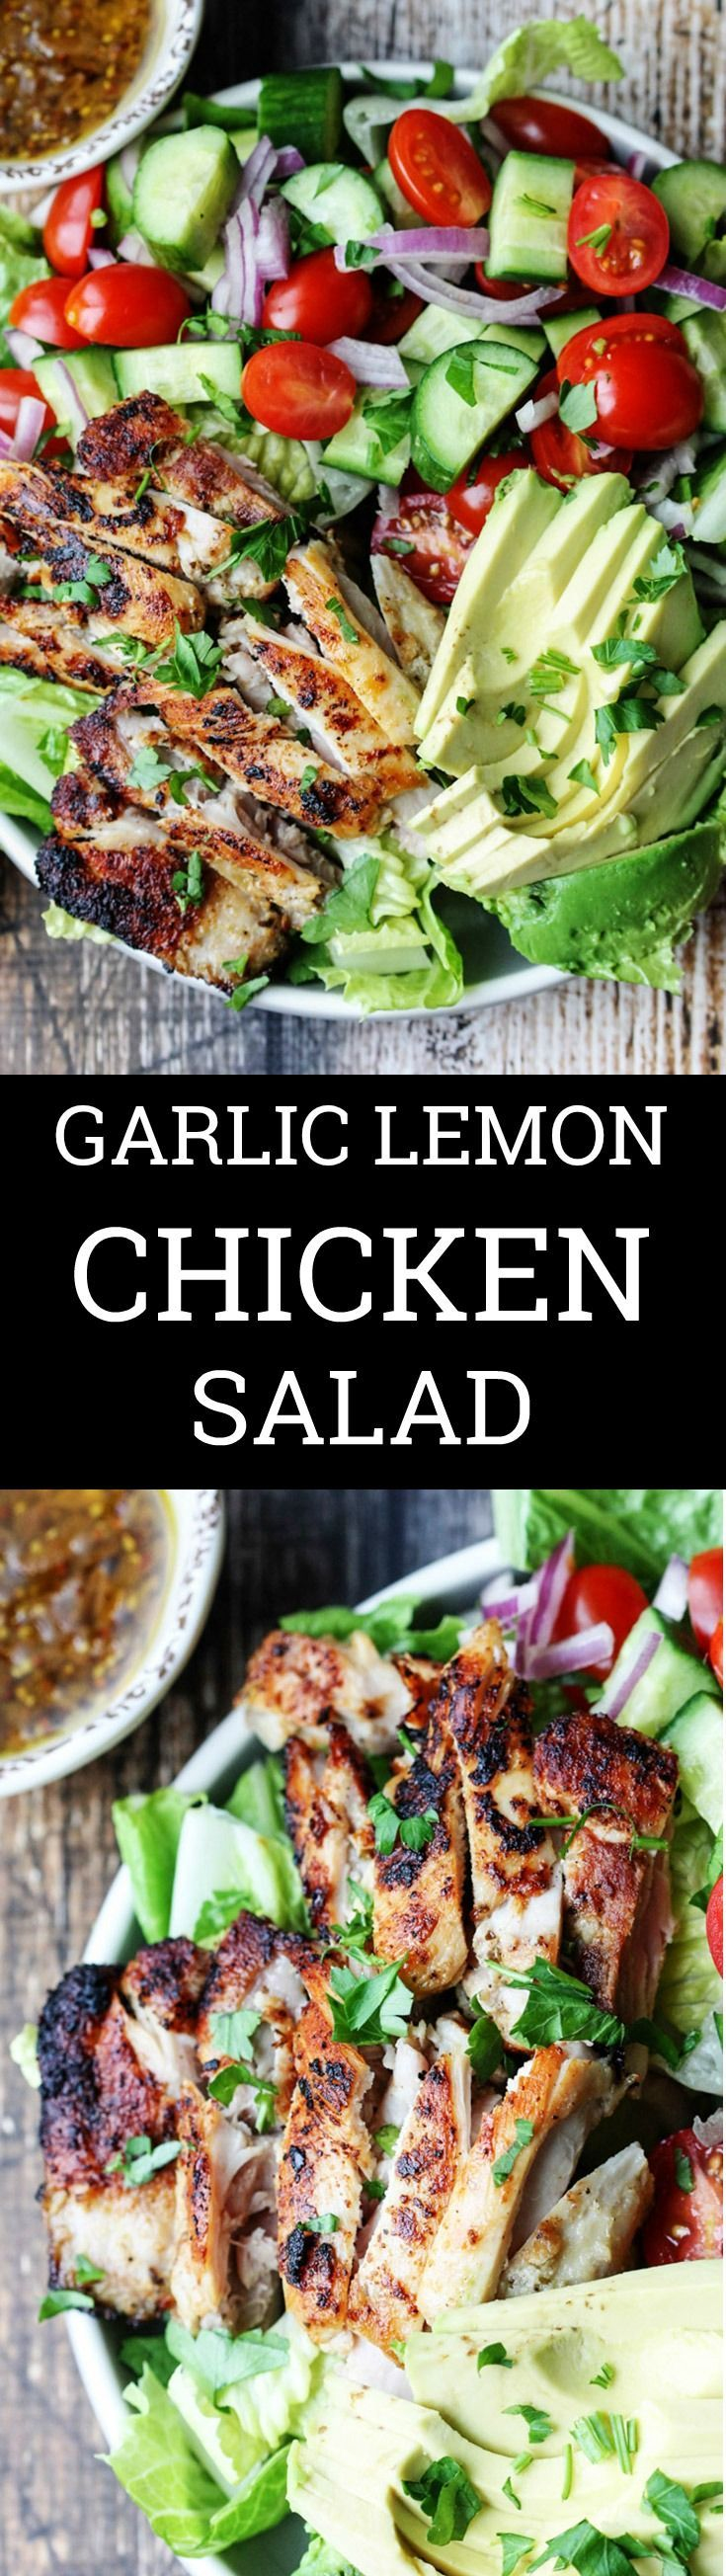 Garlic Lemon Chicken Salad with Glazed Onions Mustard Dressing is a super easy and healthy meal with lots of flavor, from easy to use Pop & Cook Crushed Garlic and Saut�ed Glazed Onions. #AD #UltimateKitchenHack @pop.and.cook #salad #chicken